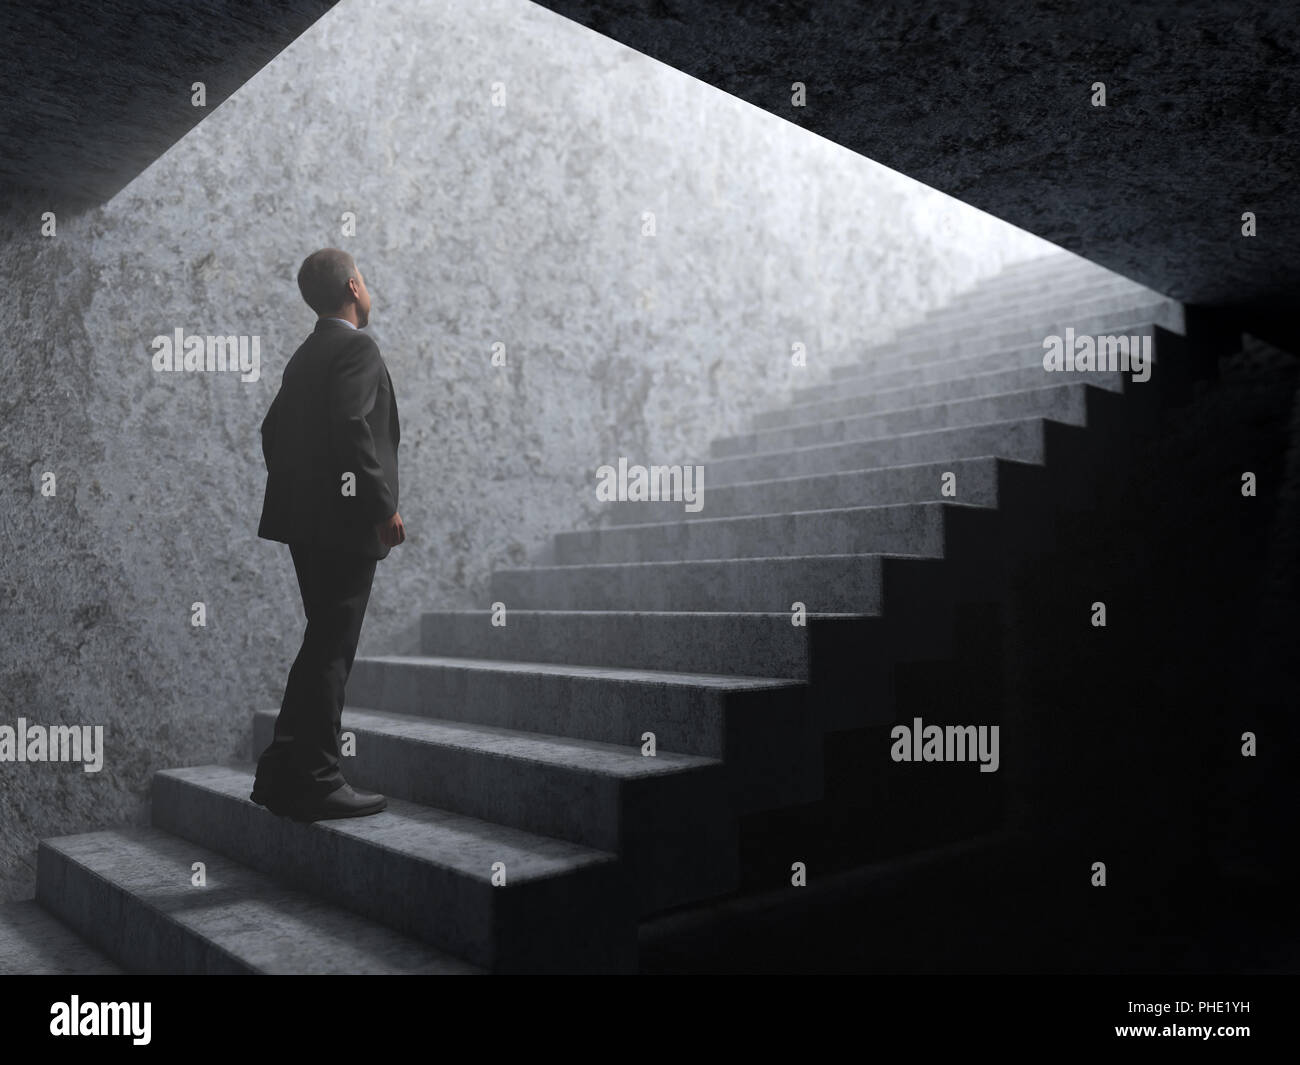 man climbs the stairs from darkness to light - Stock Image